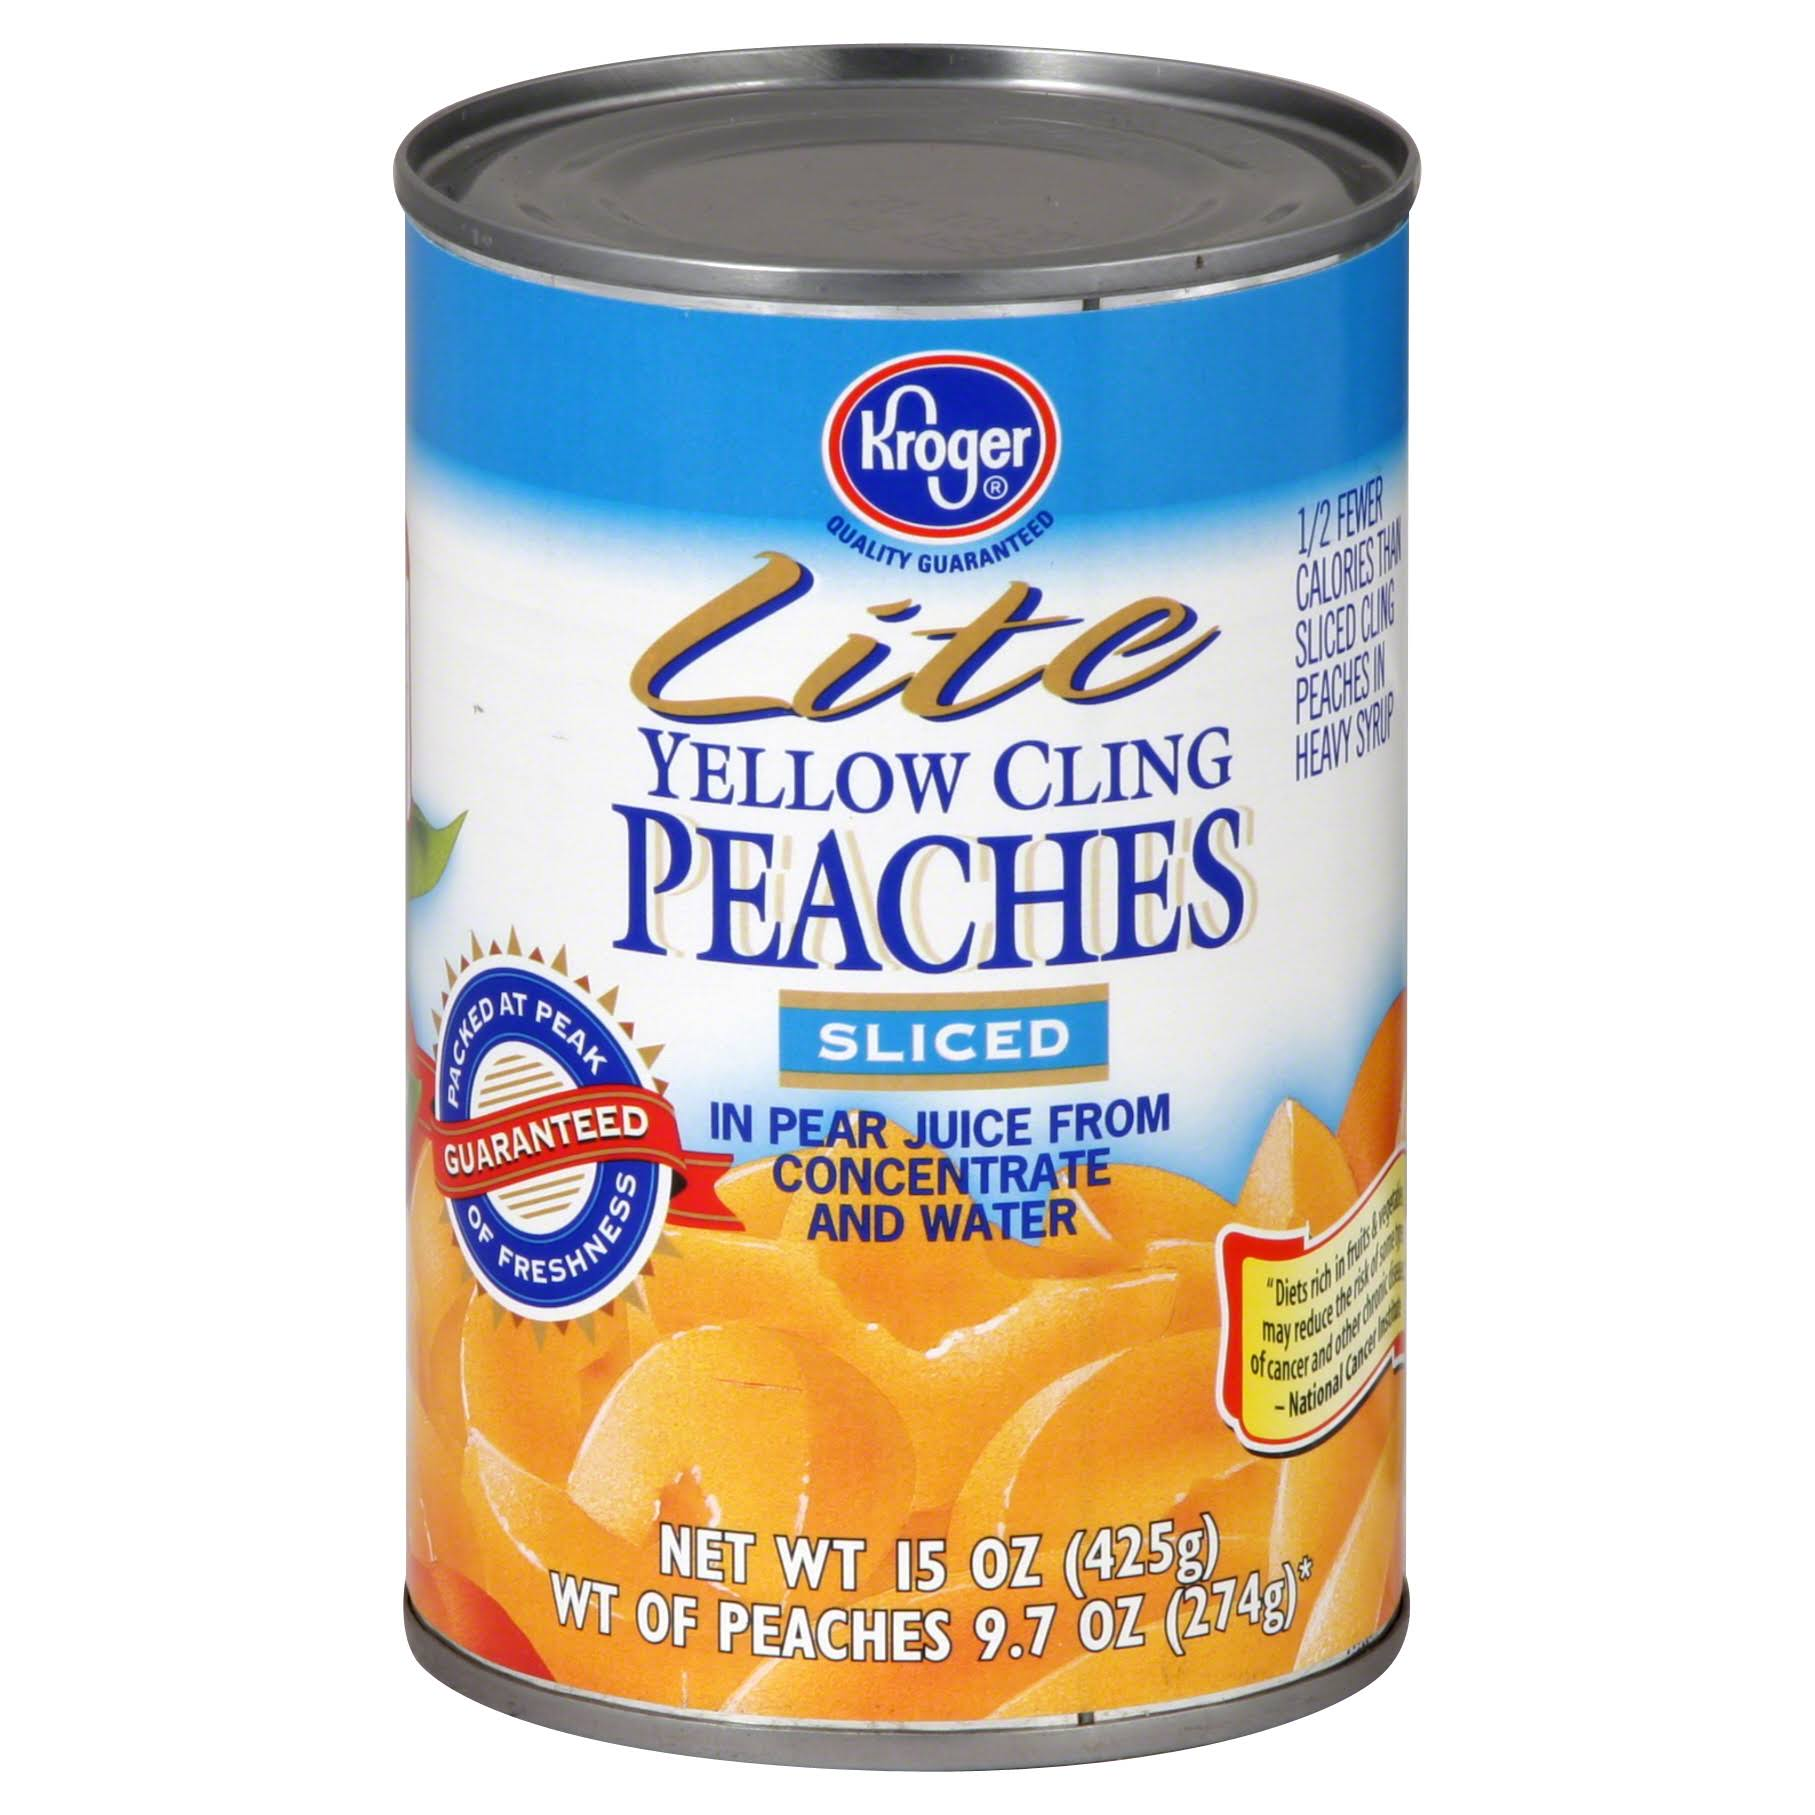 Kroger Lite Peaches, Yellow Cling, Sliced - 15 oz